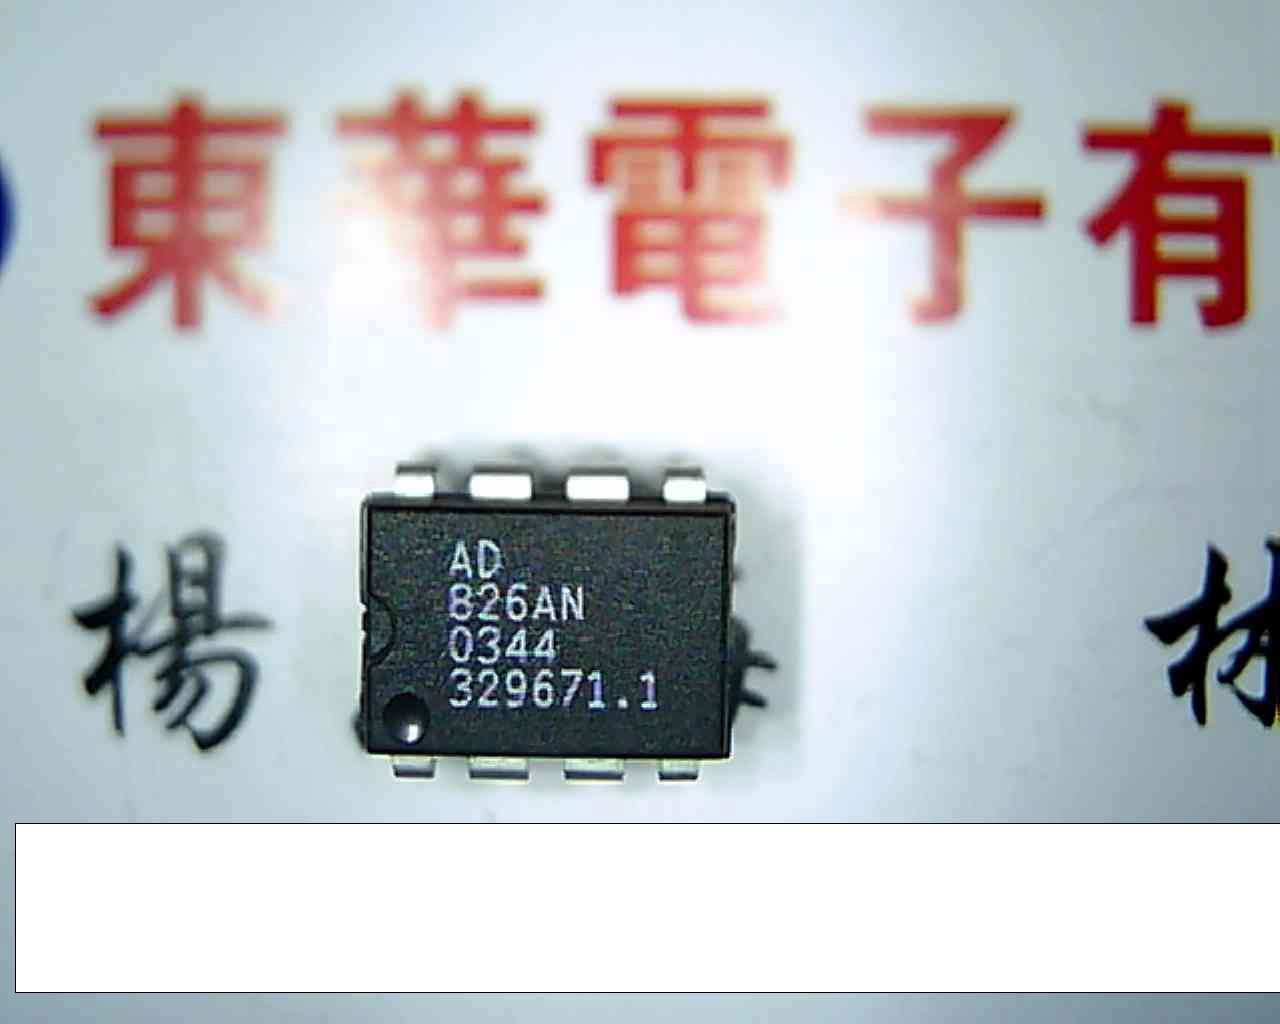 1PCS  AD826AN AD826ANZ AD826 amplifier chip DIP-8 new original new